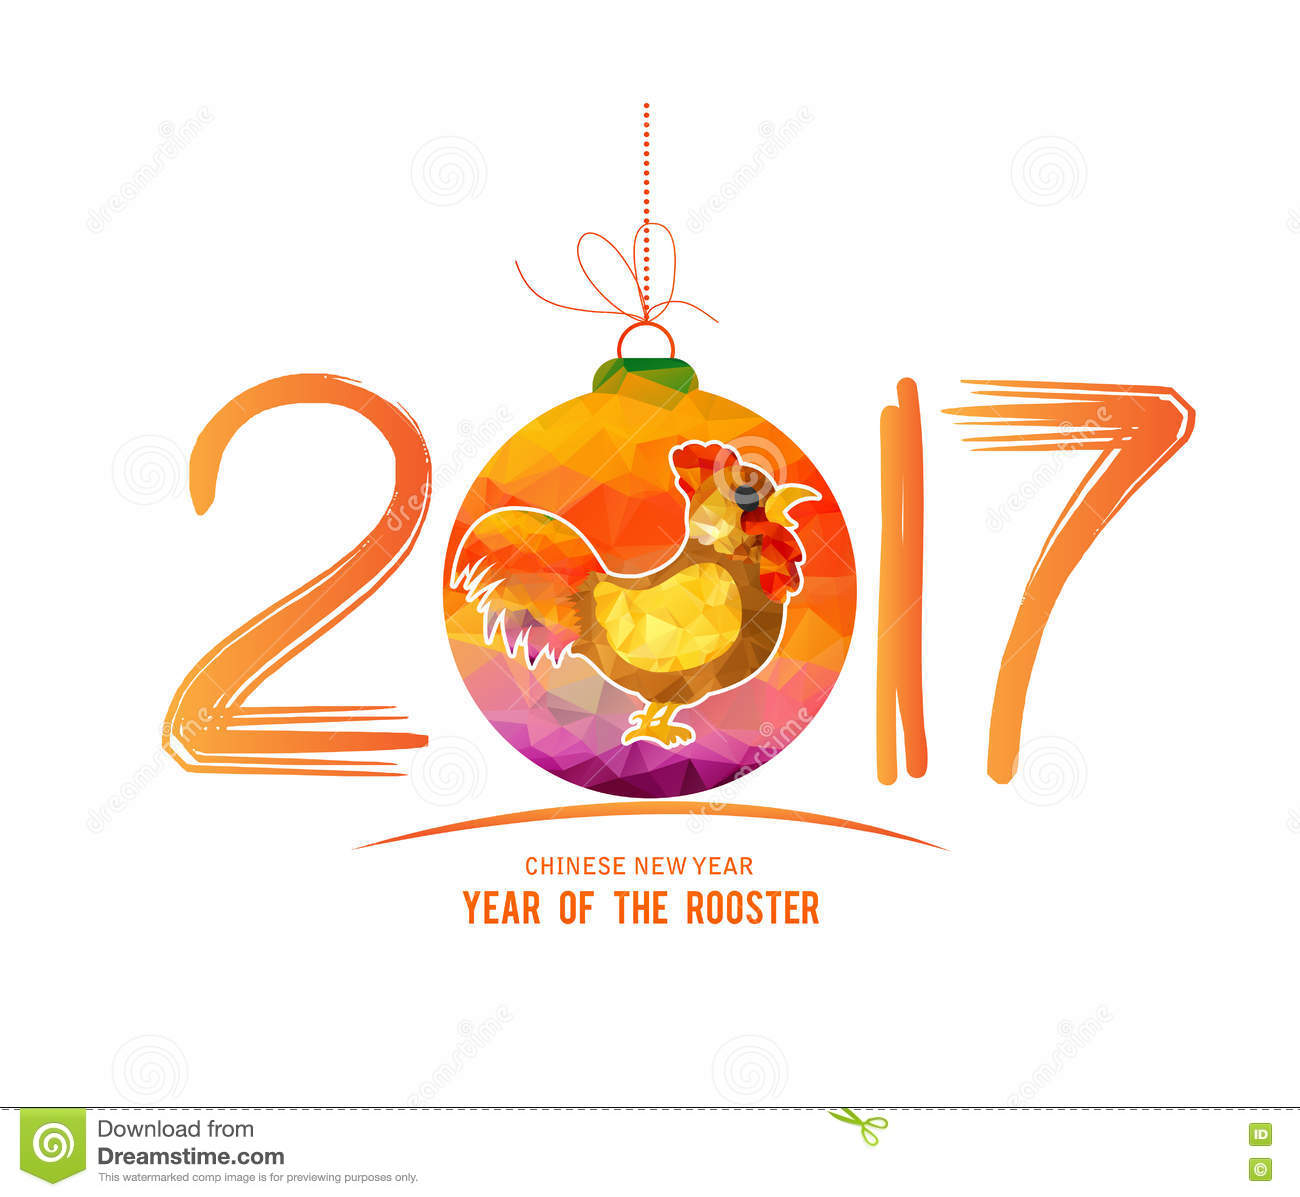 New year 2017 greeting pictures year of rooster happy chinese new year - 2017 Happy New Year Greeting Card Chinese New Year Of The Rooster Stock Illustration